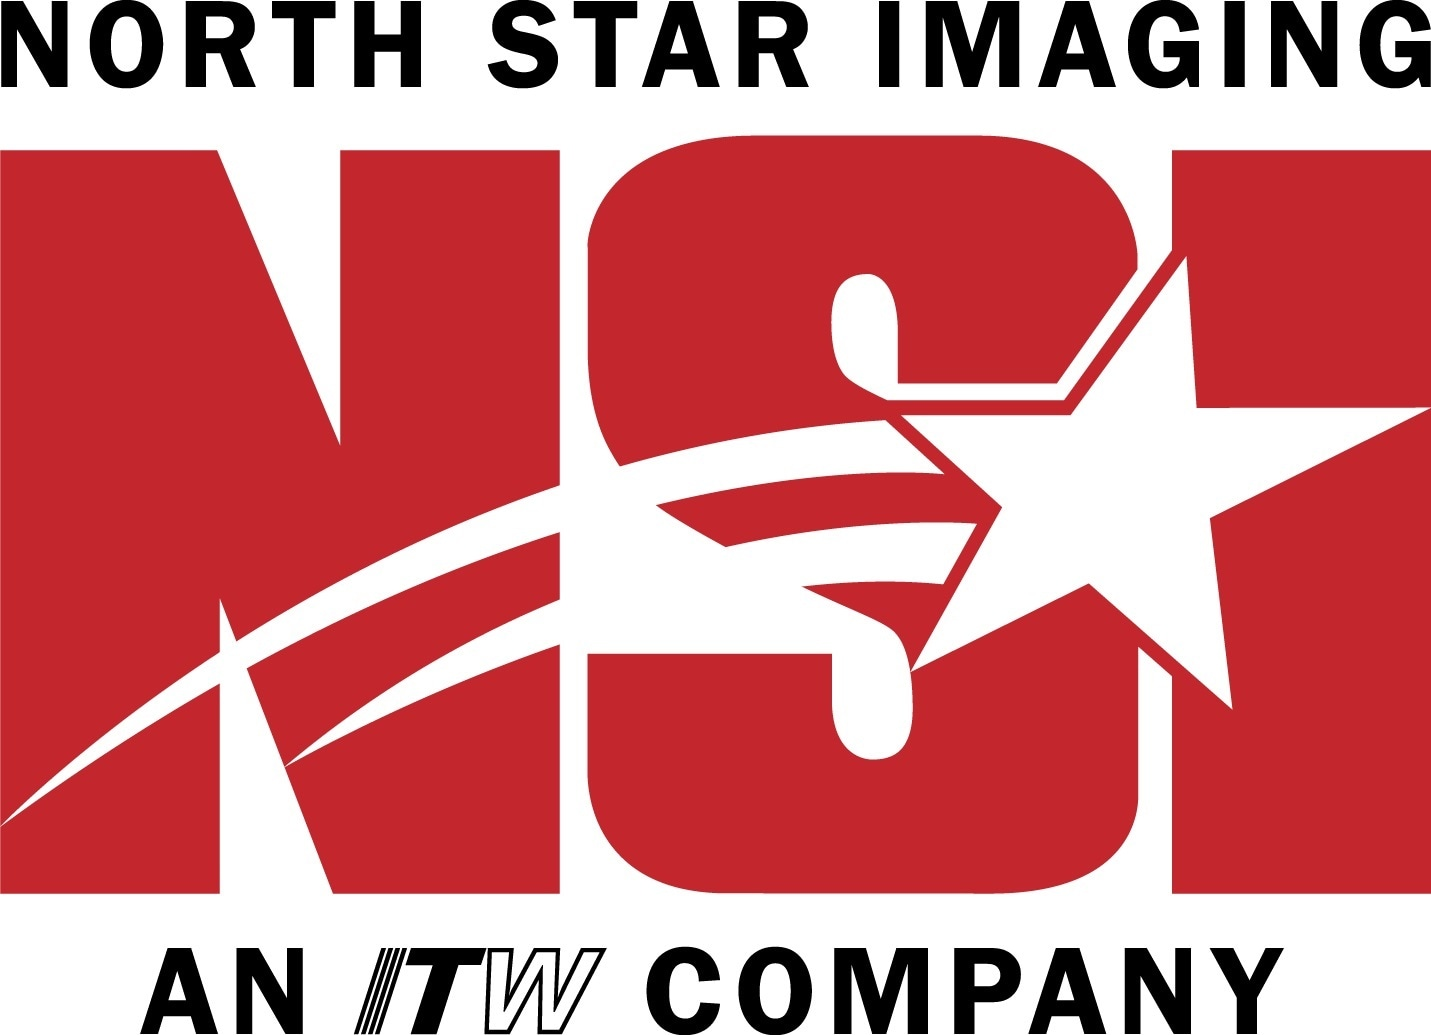 North Star Imaging, Inc. logo.